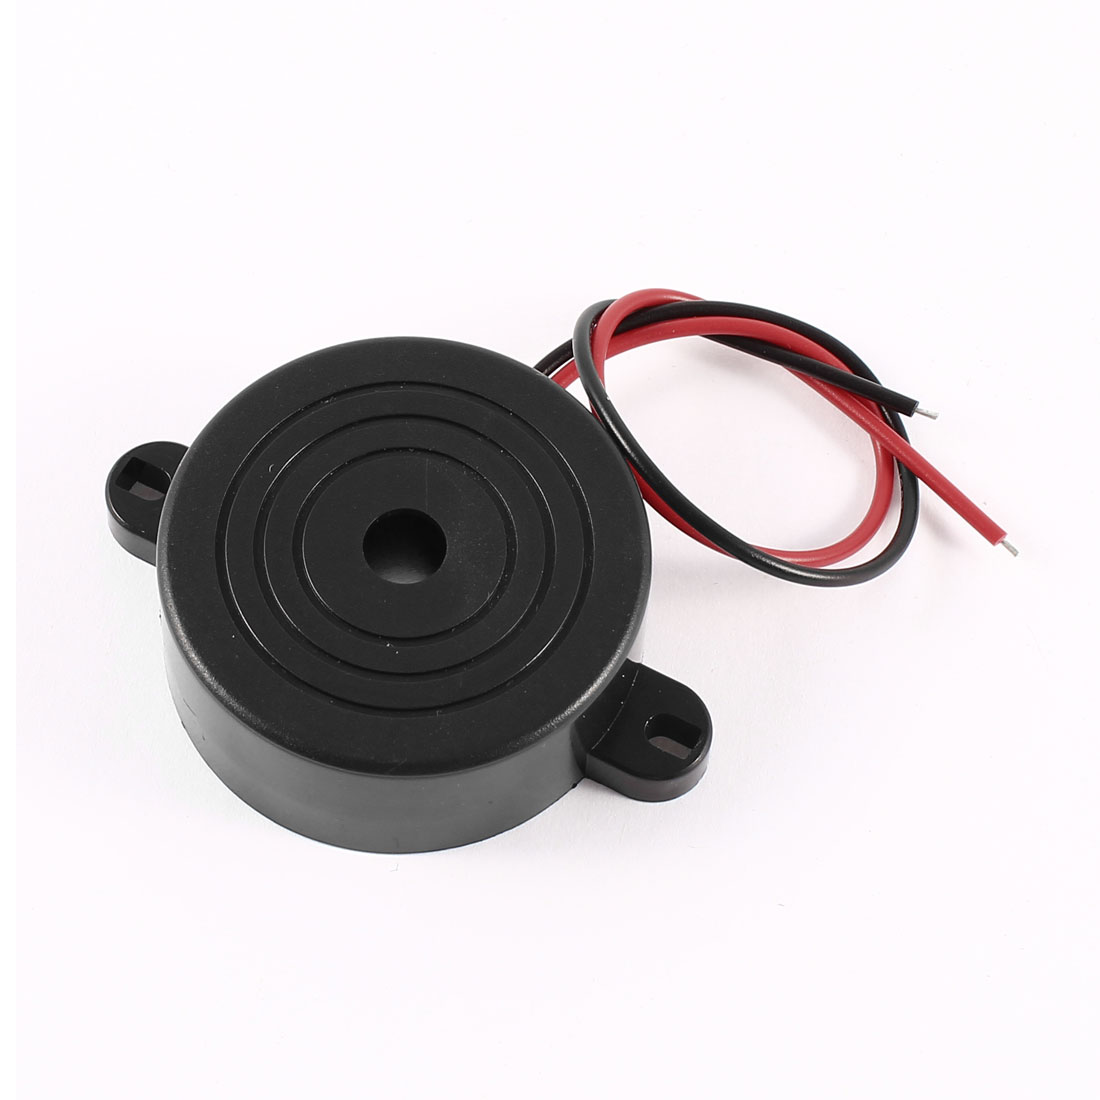 Industrial Black Red Cable Continuous Sound Electronic Buzzer DC 3-24V 42mmx16mm